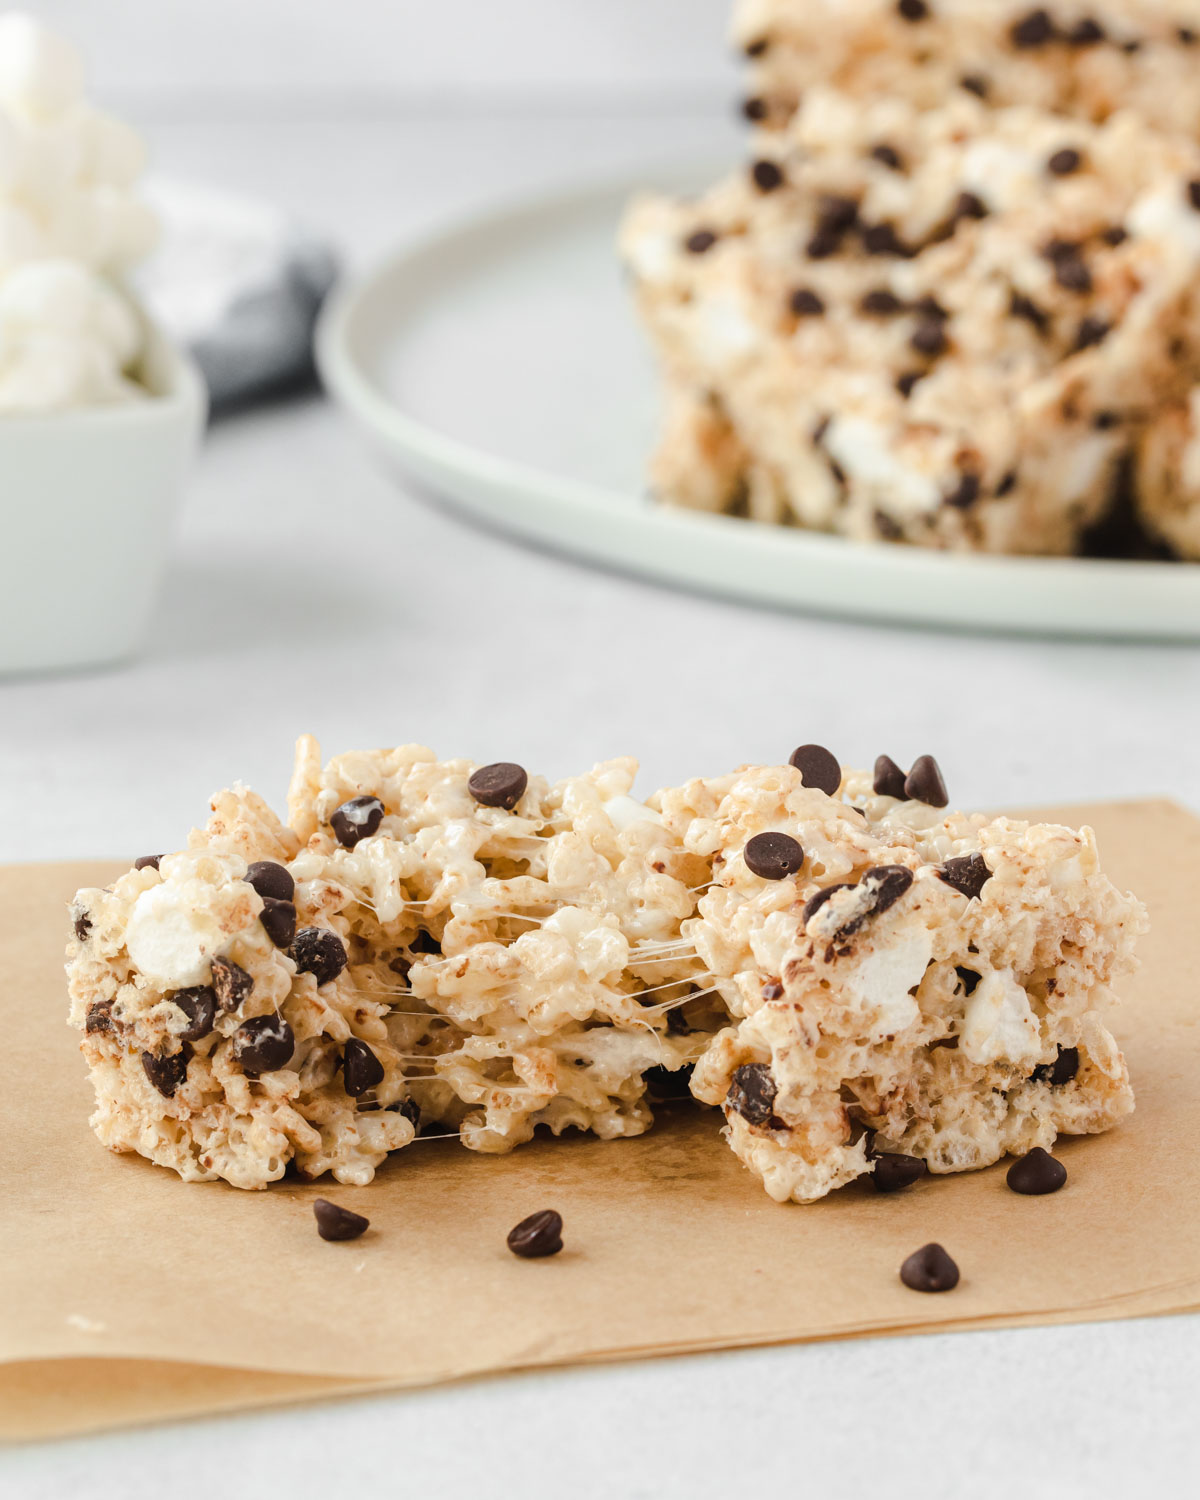 Chocolate chip rice krispie treat on a bown parchment square, pulled apart to show gooey marshmallow.